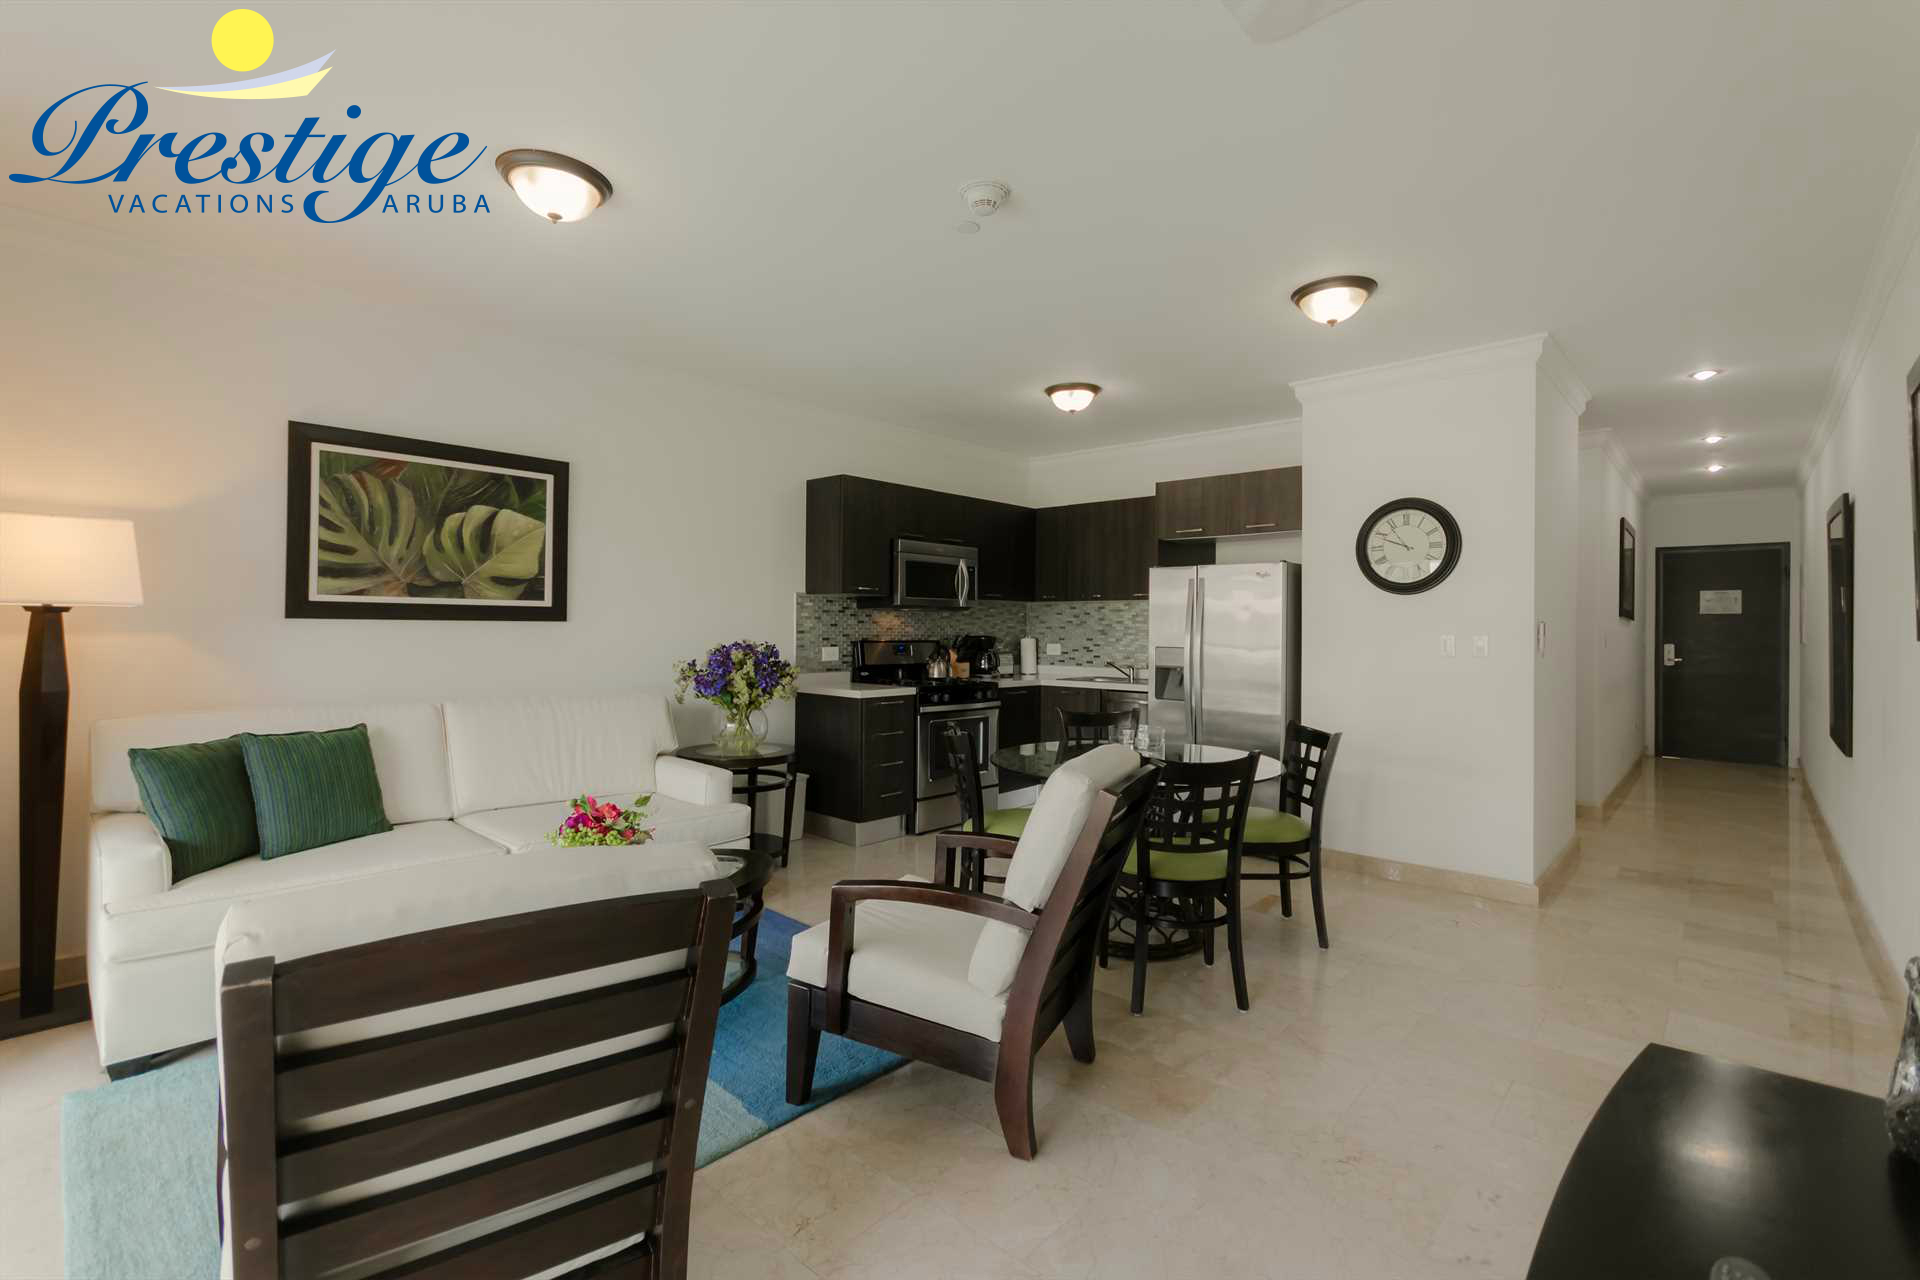 Your condo, Coconut Palm offers plenty of space and provides you with everything you need to feel right at home